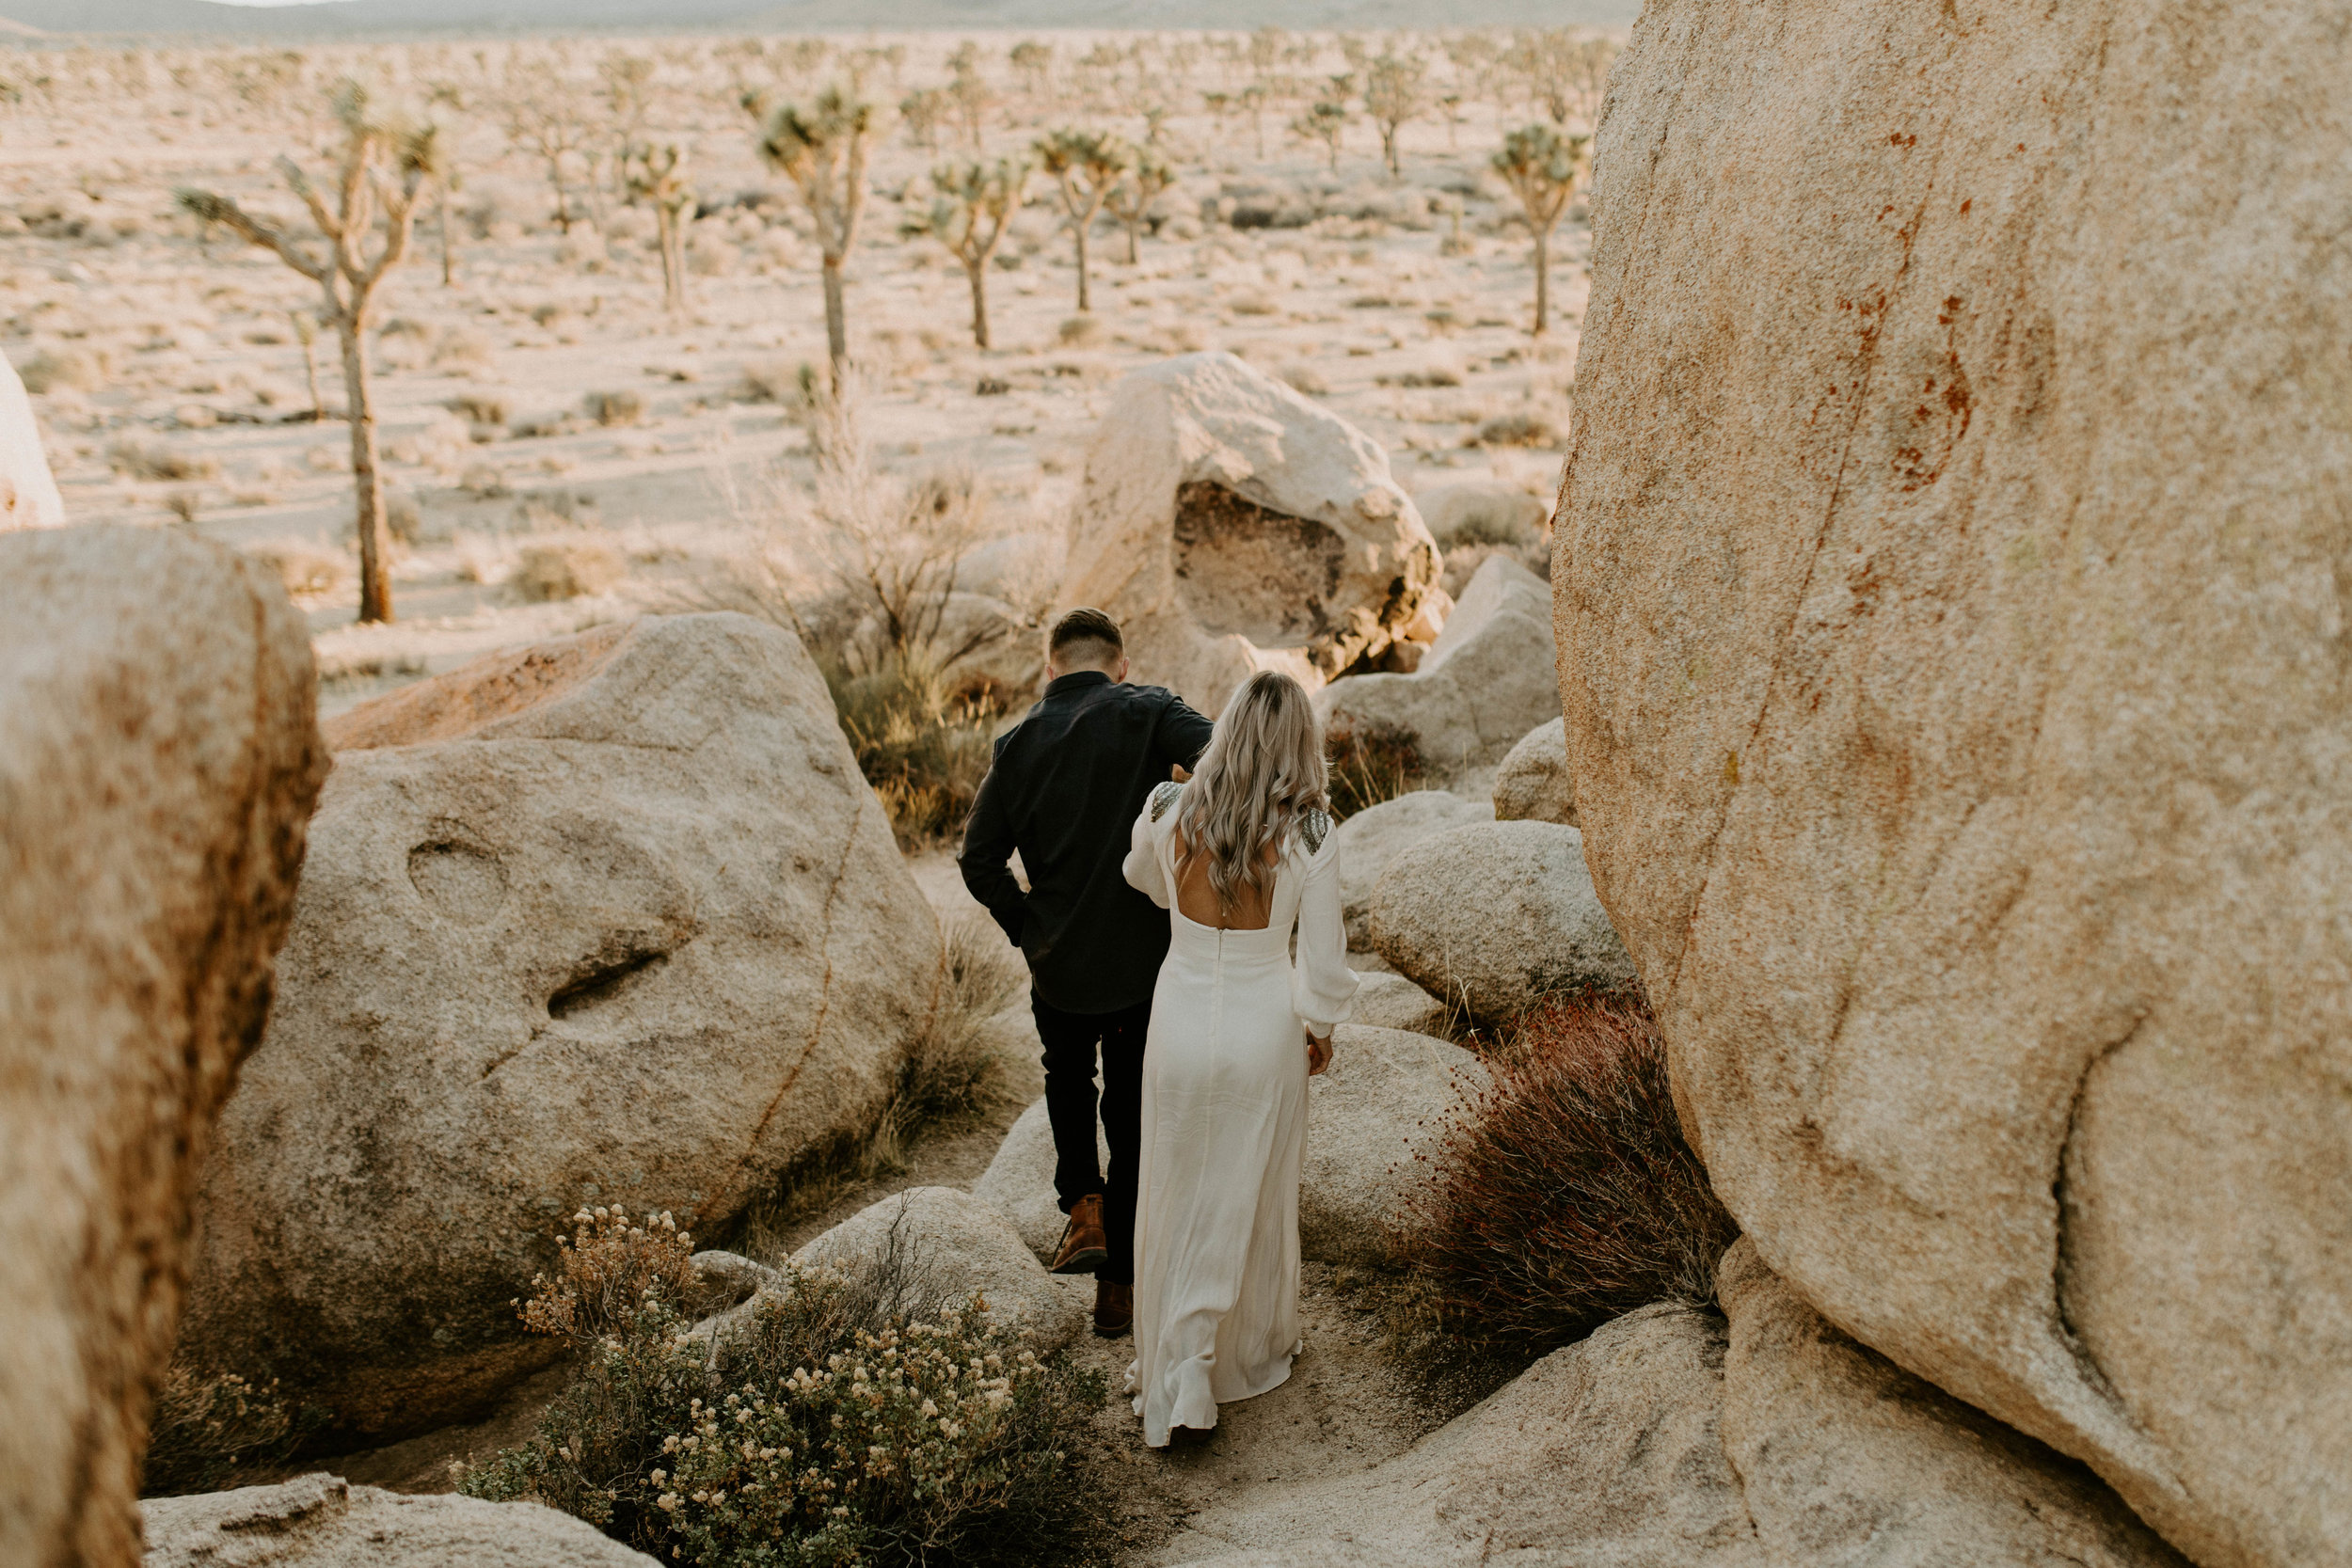 Hidden Valley Campground in Joshua Tree National Park